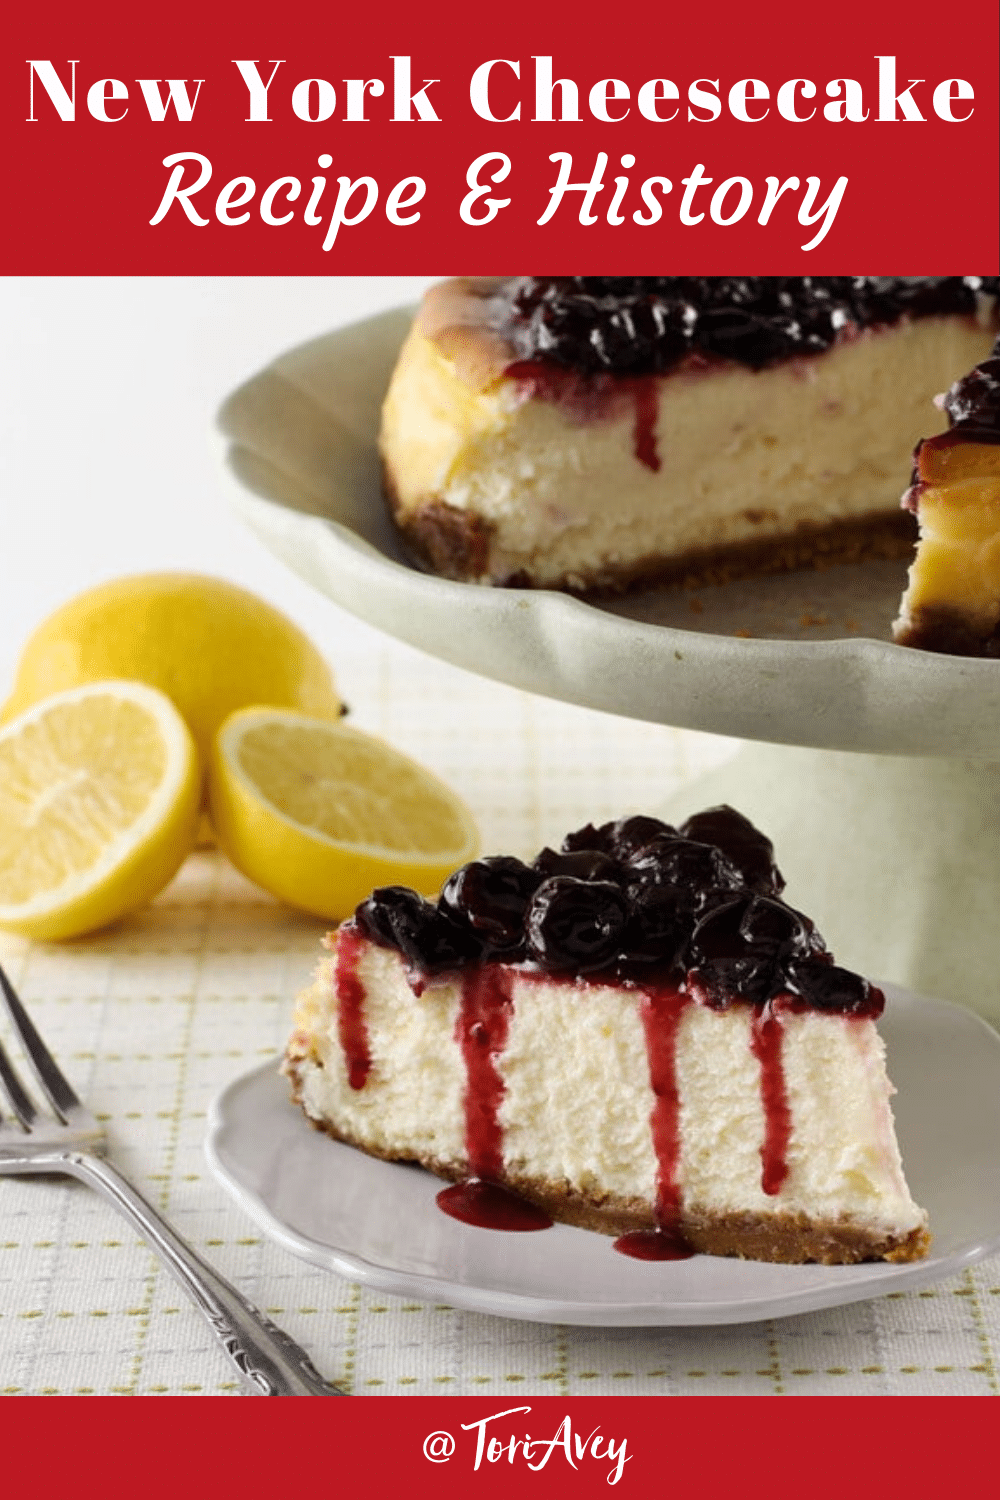 American Cakes New York Cheesecake The History Of Cheesecake And A Traditional Recipe For New Yo In 2020 New York Cheesecake Jewish Cheesecake Recipe Shavuot Recipes